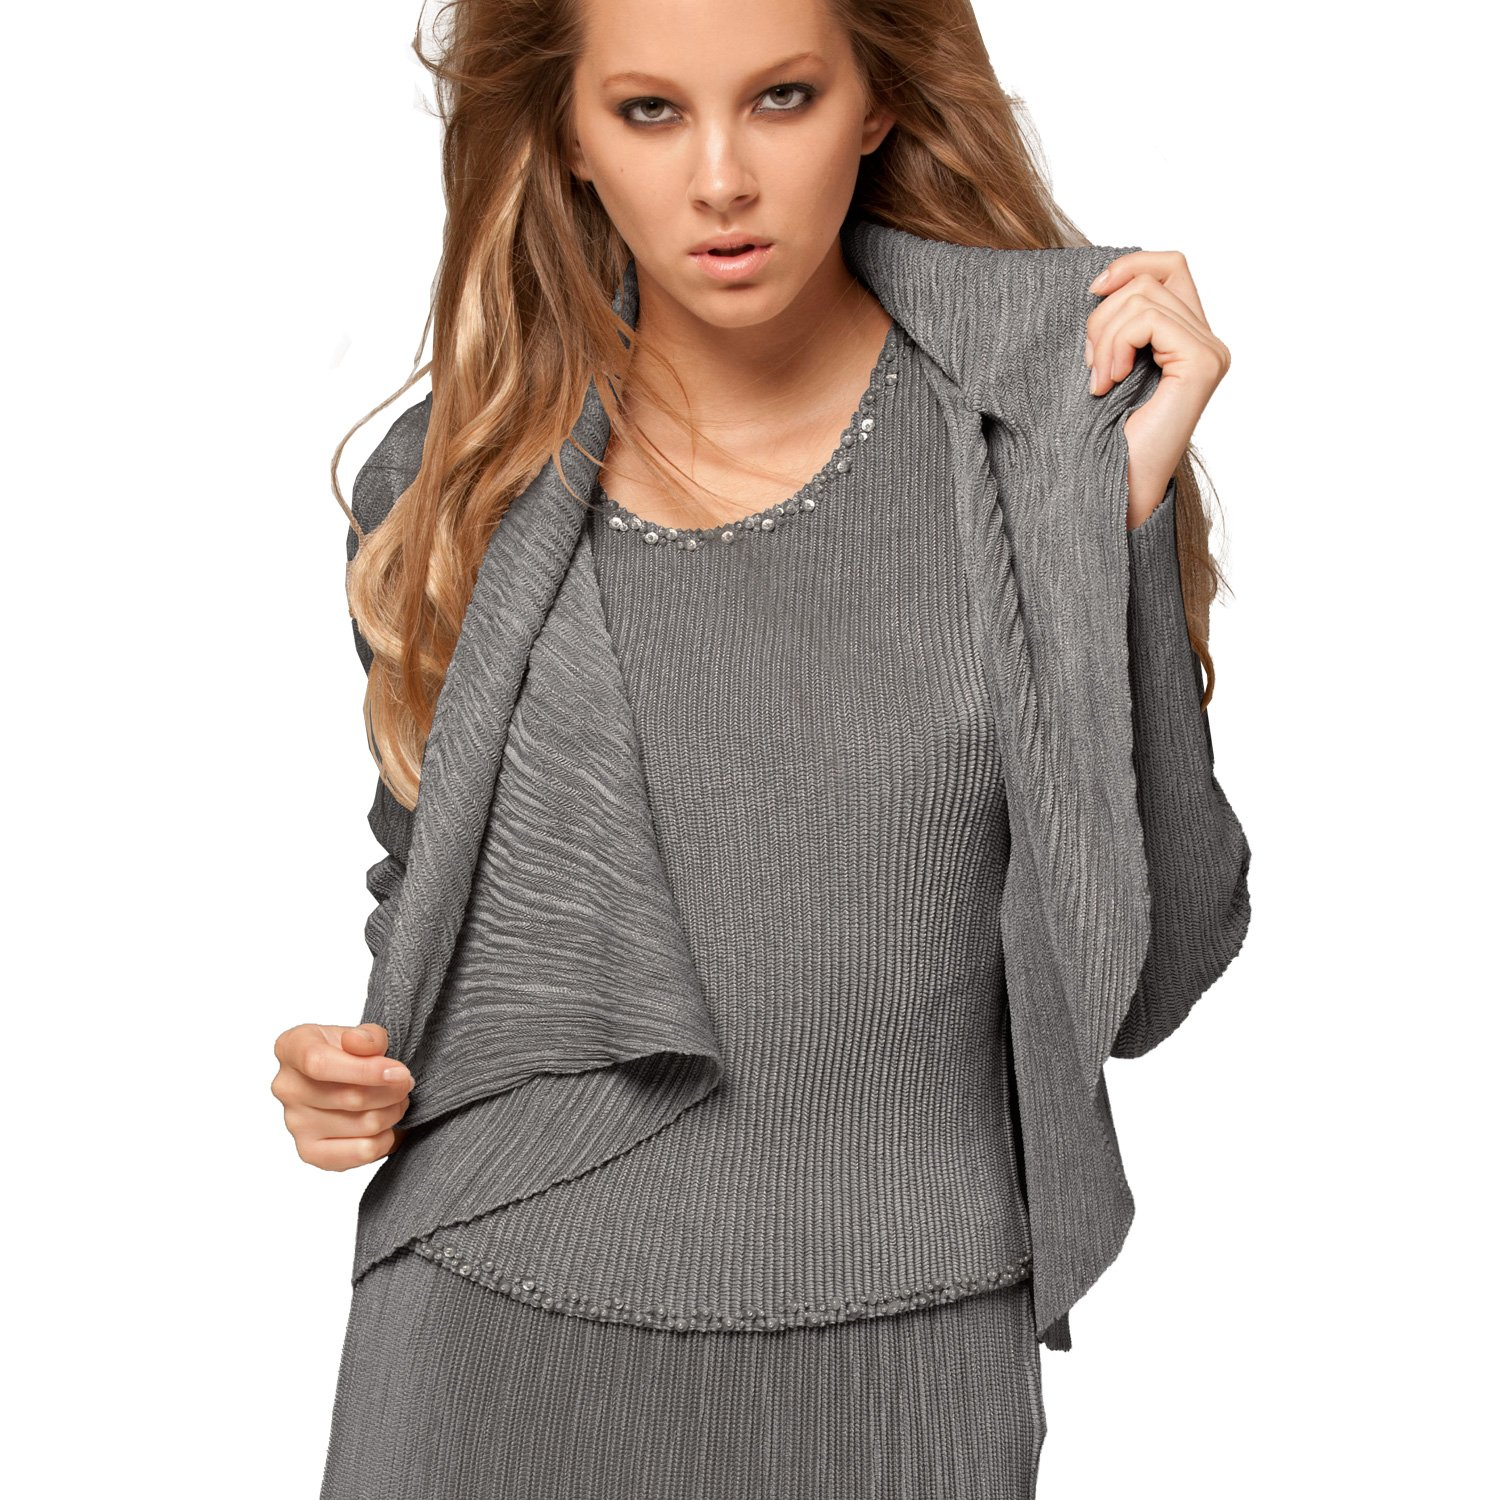 SPECCHIO PLEATS Women's Short-sleeve top trimmed with beads & sequins one size Grey